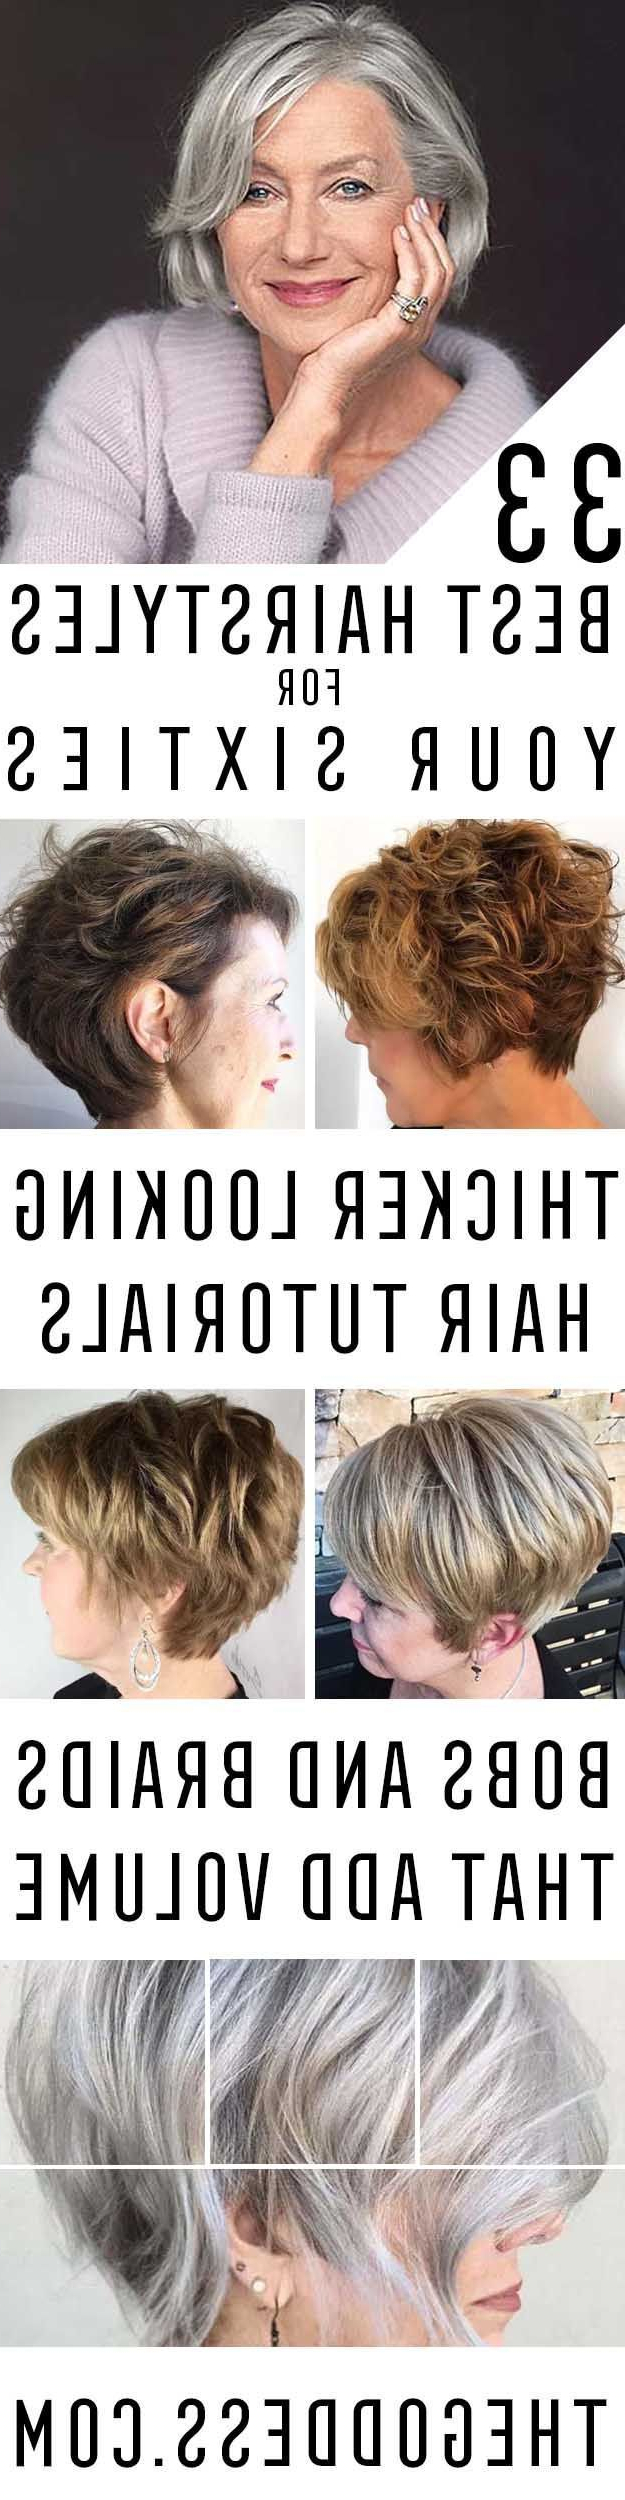 Short Hairstyles For Women Over 60 Years Old With Fine Hair For Short Haircuts For 60 Year Old Woman (View 25 of 25)